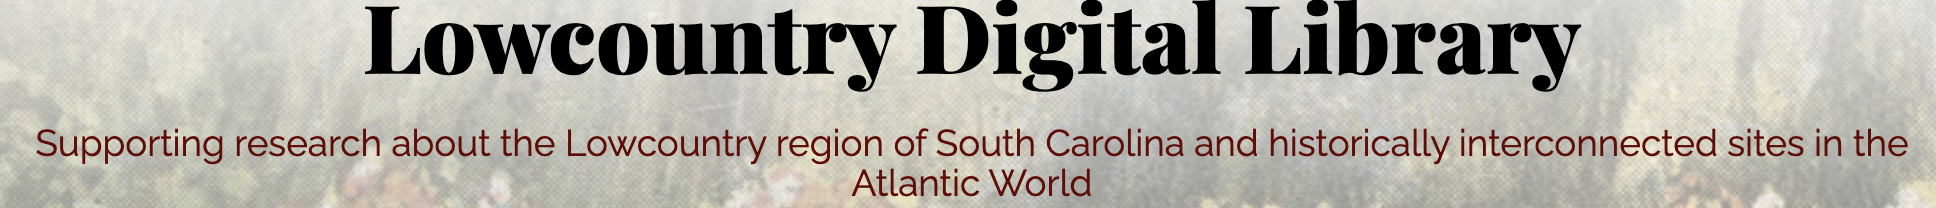 Lowcountry Digital Library LCDL